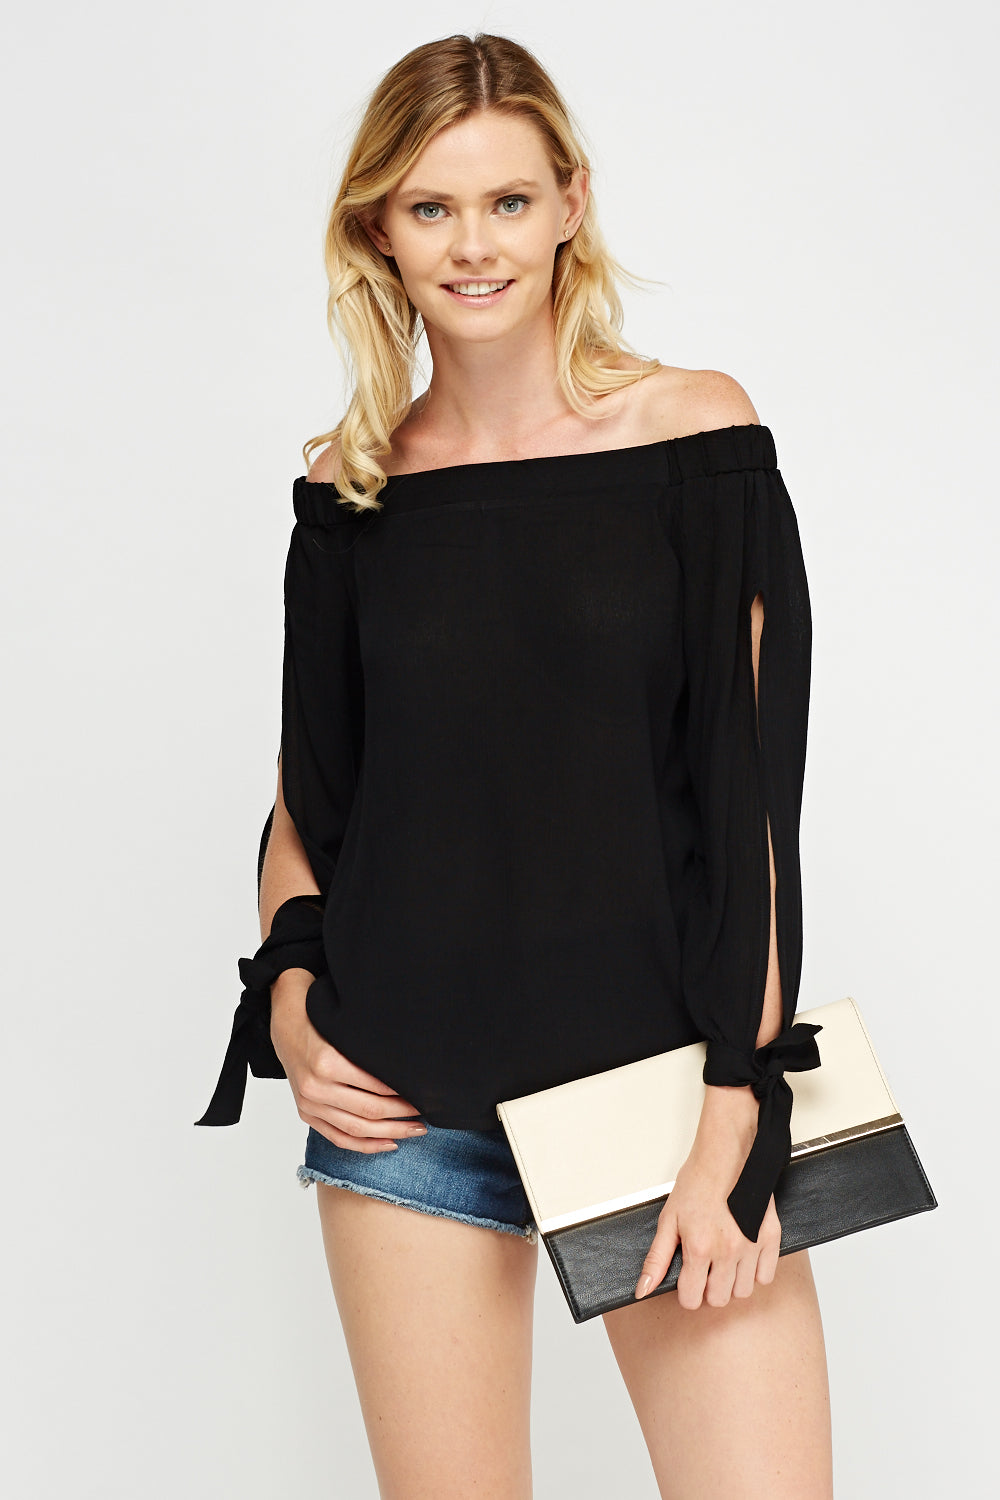 Top off shoulder - MiTiendaSecreta